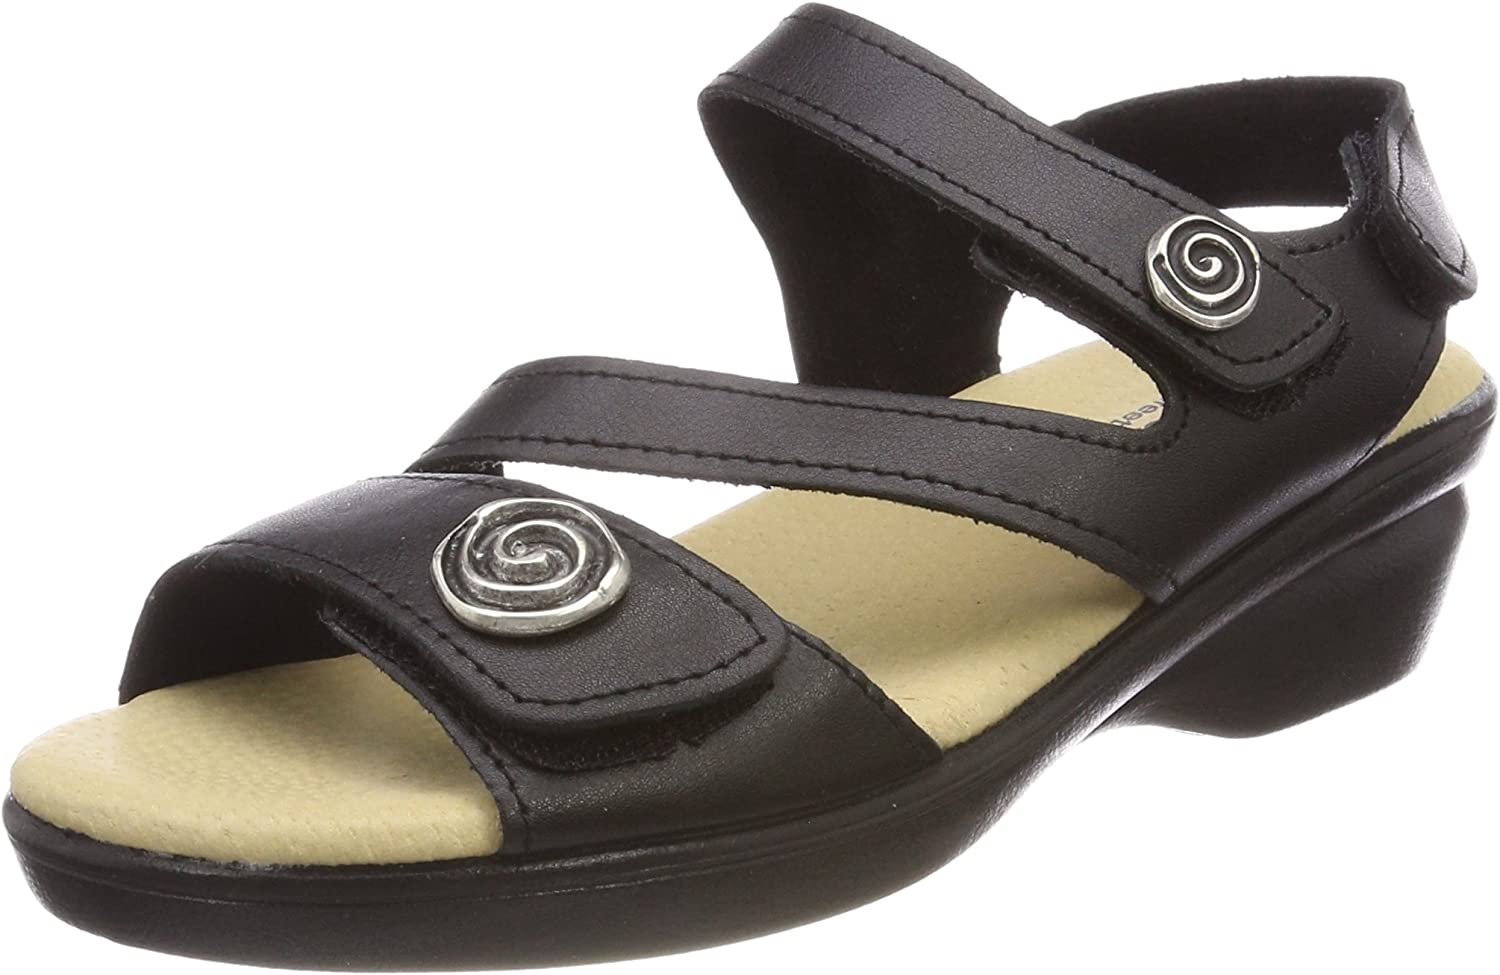 Padders Women's Slingback Sandals Max 70% OFF Back Special price for a limited time Sling